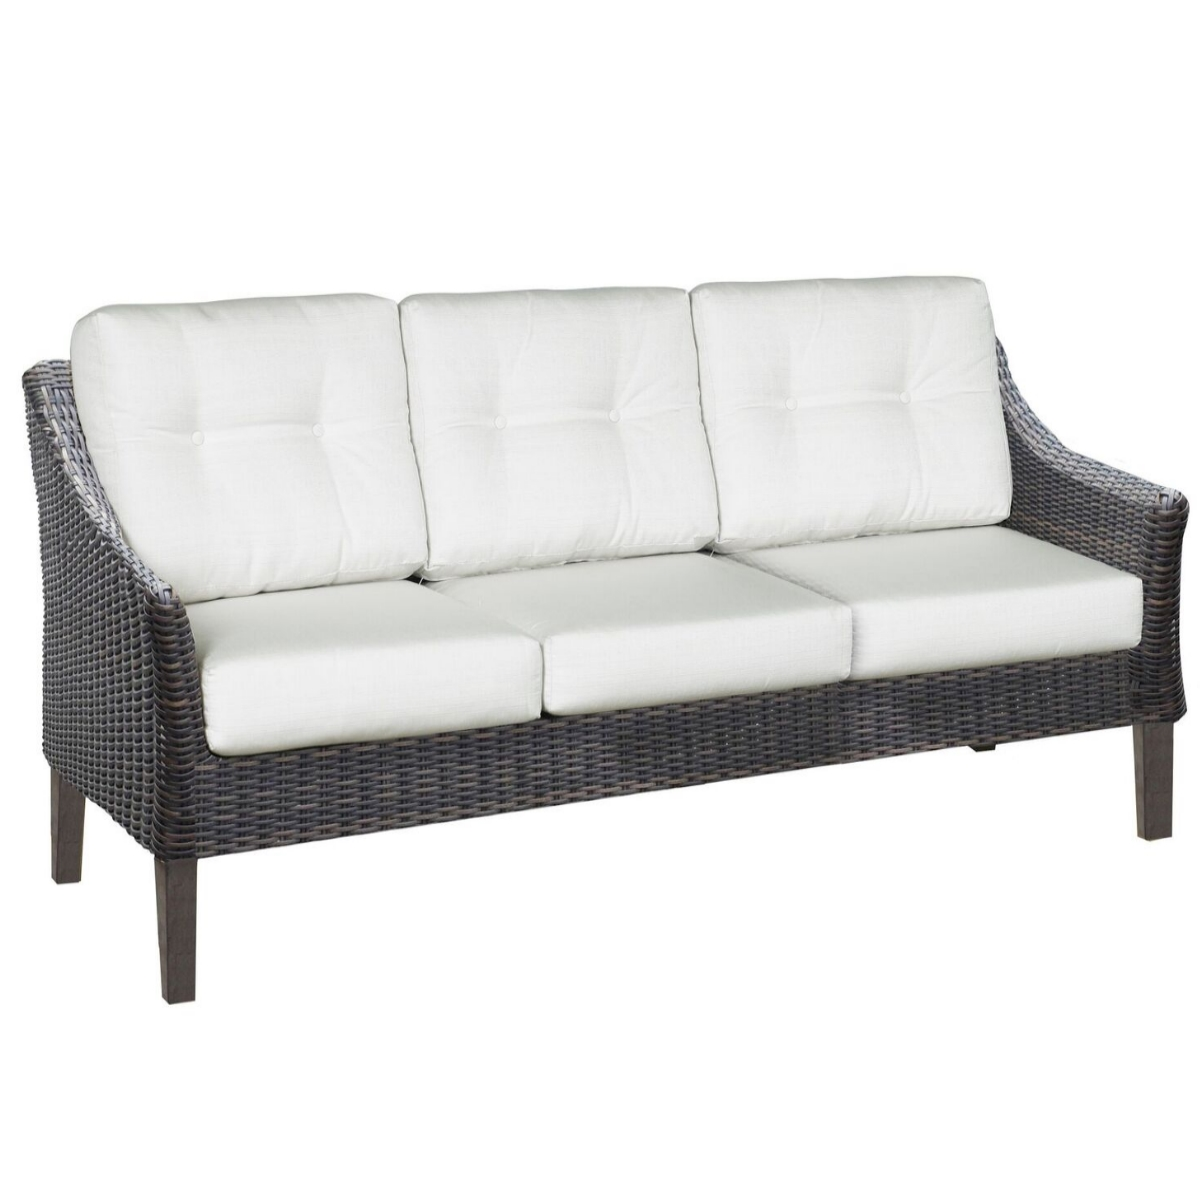 San Marino Outdoor Patio Furniture 3 Seater Sofa